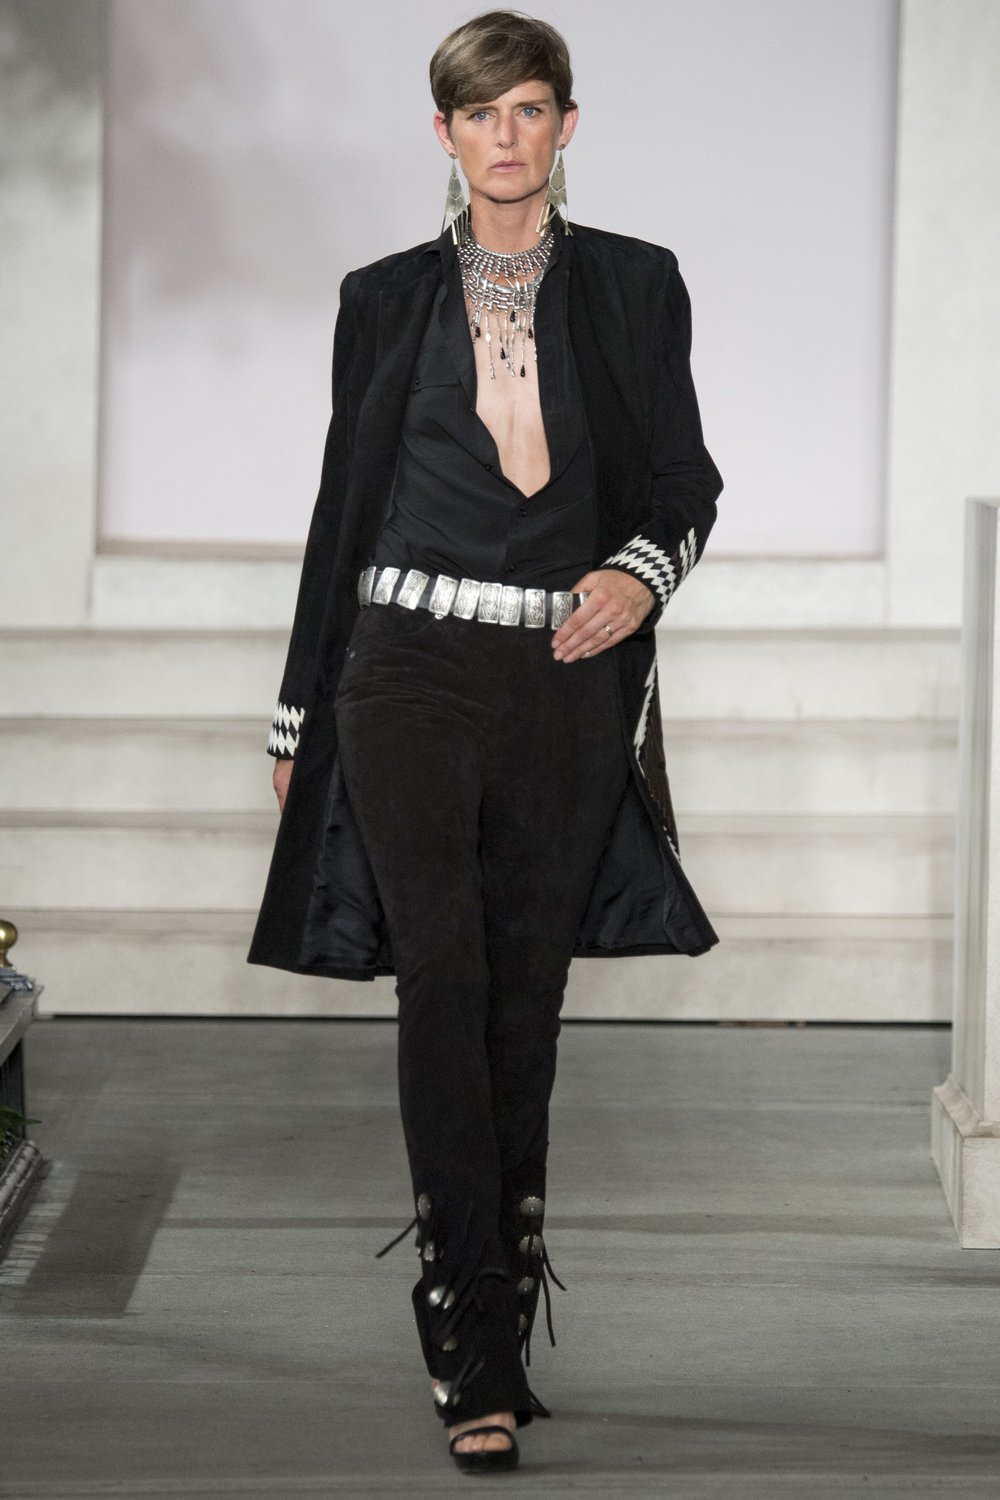 Masculine tailoring with extraordinary silver accessories that cinch the deal.